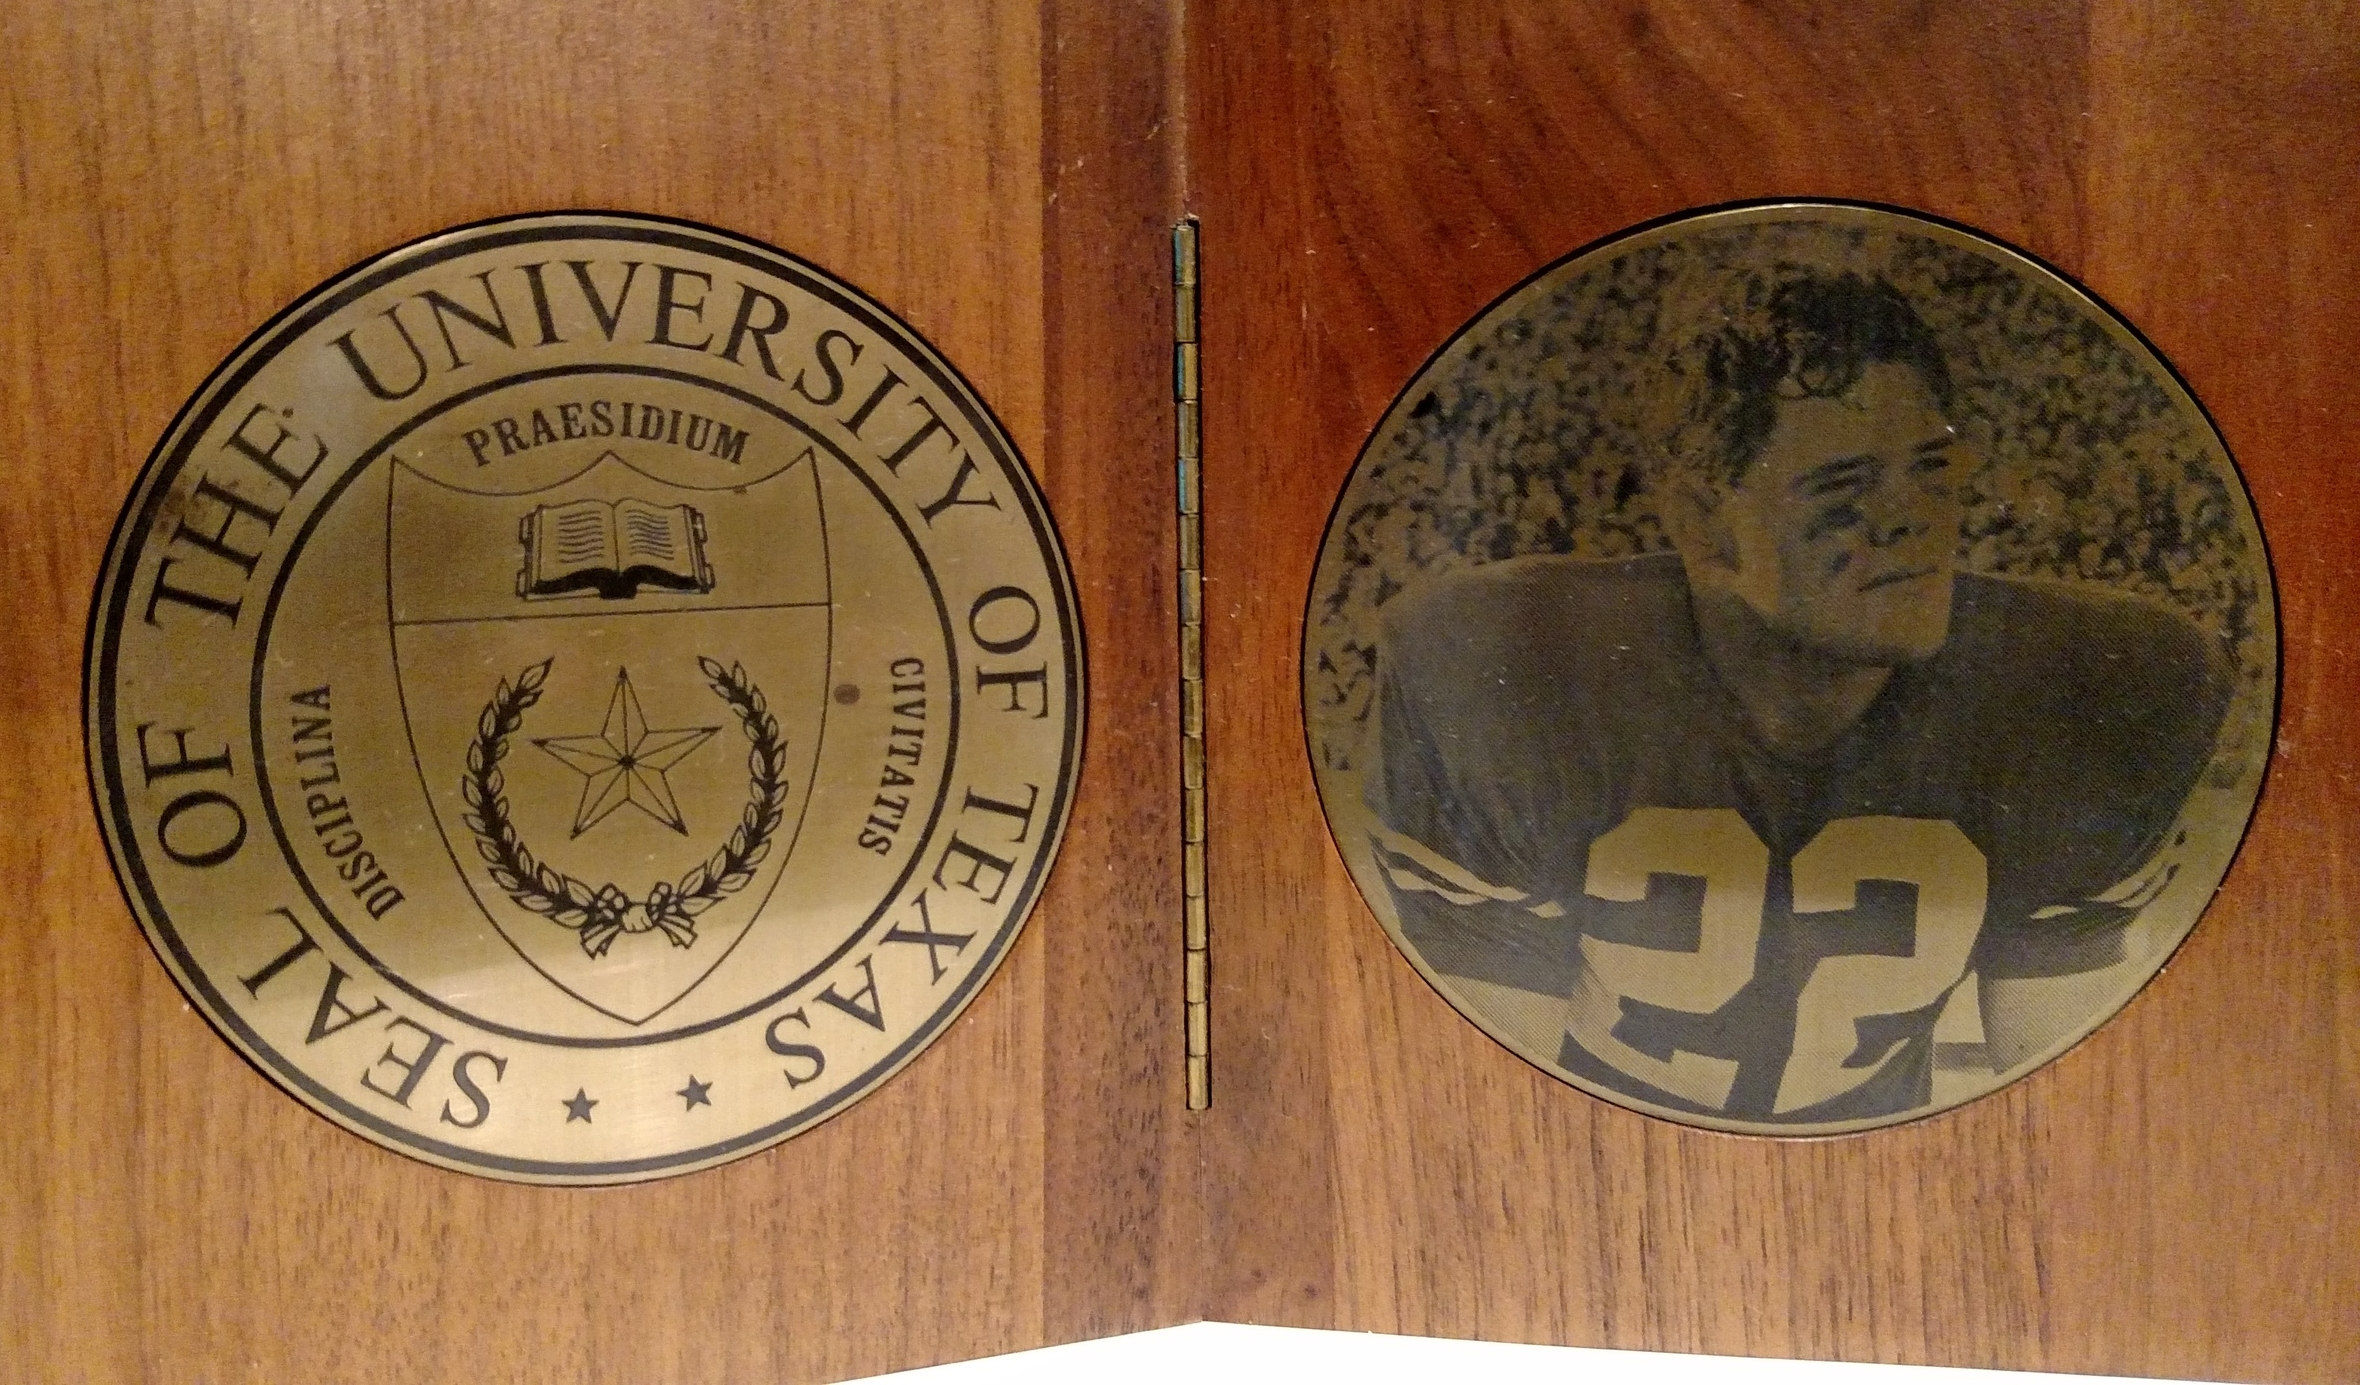 Inside of Plaque presented by Texas Ex-student Association